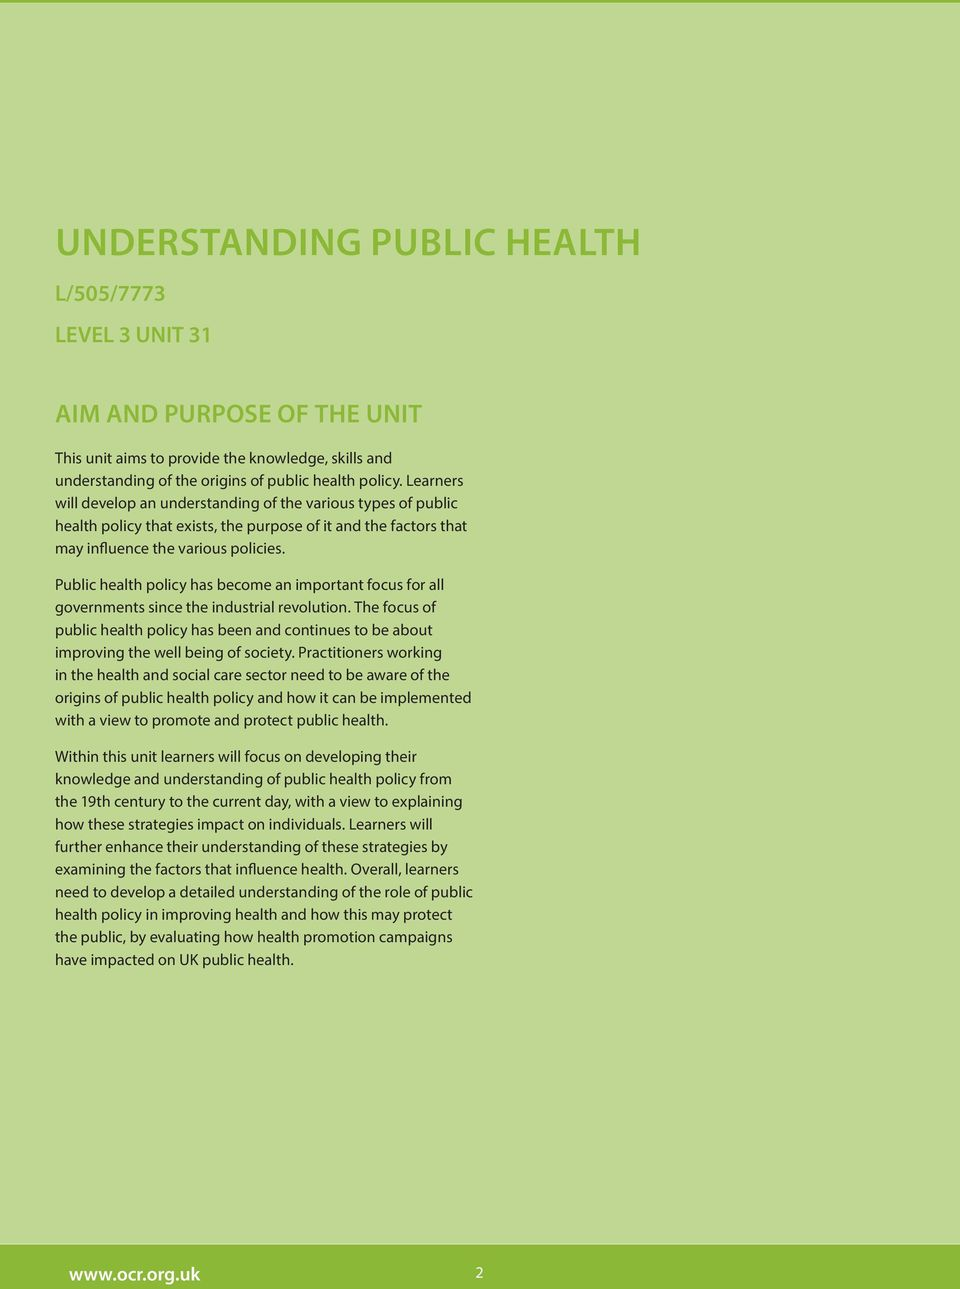 Public health policy has become an important focus for all governments since the industrial revolution.